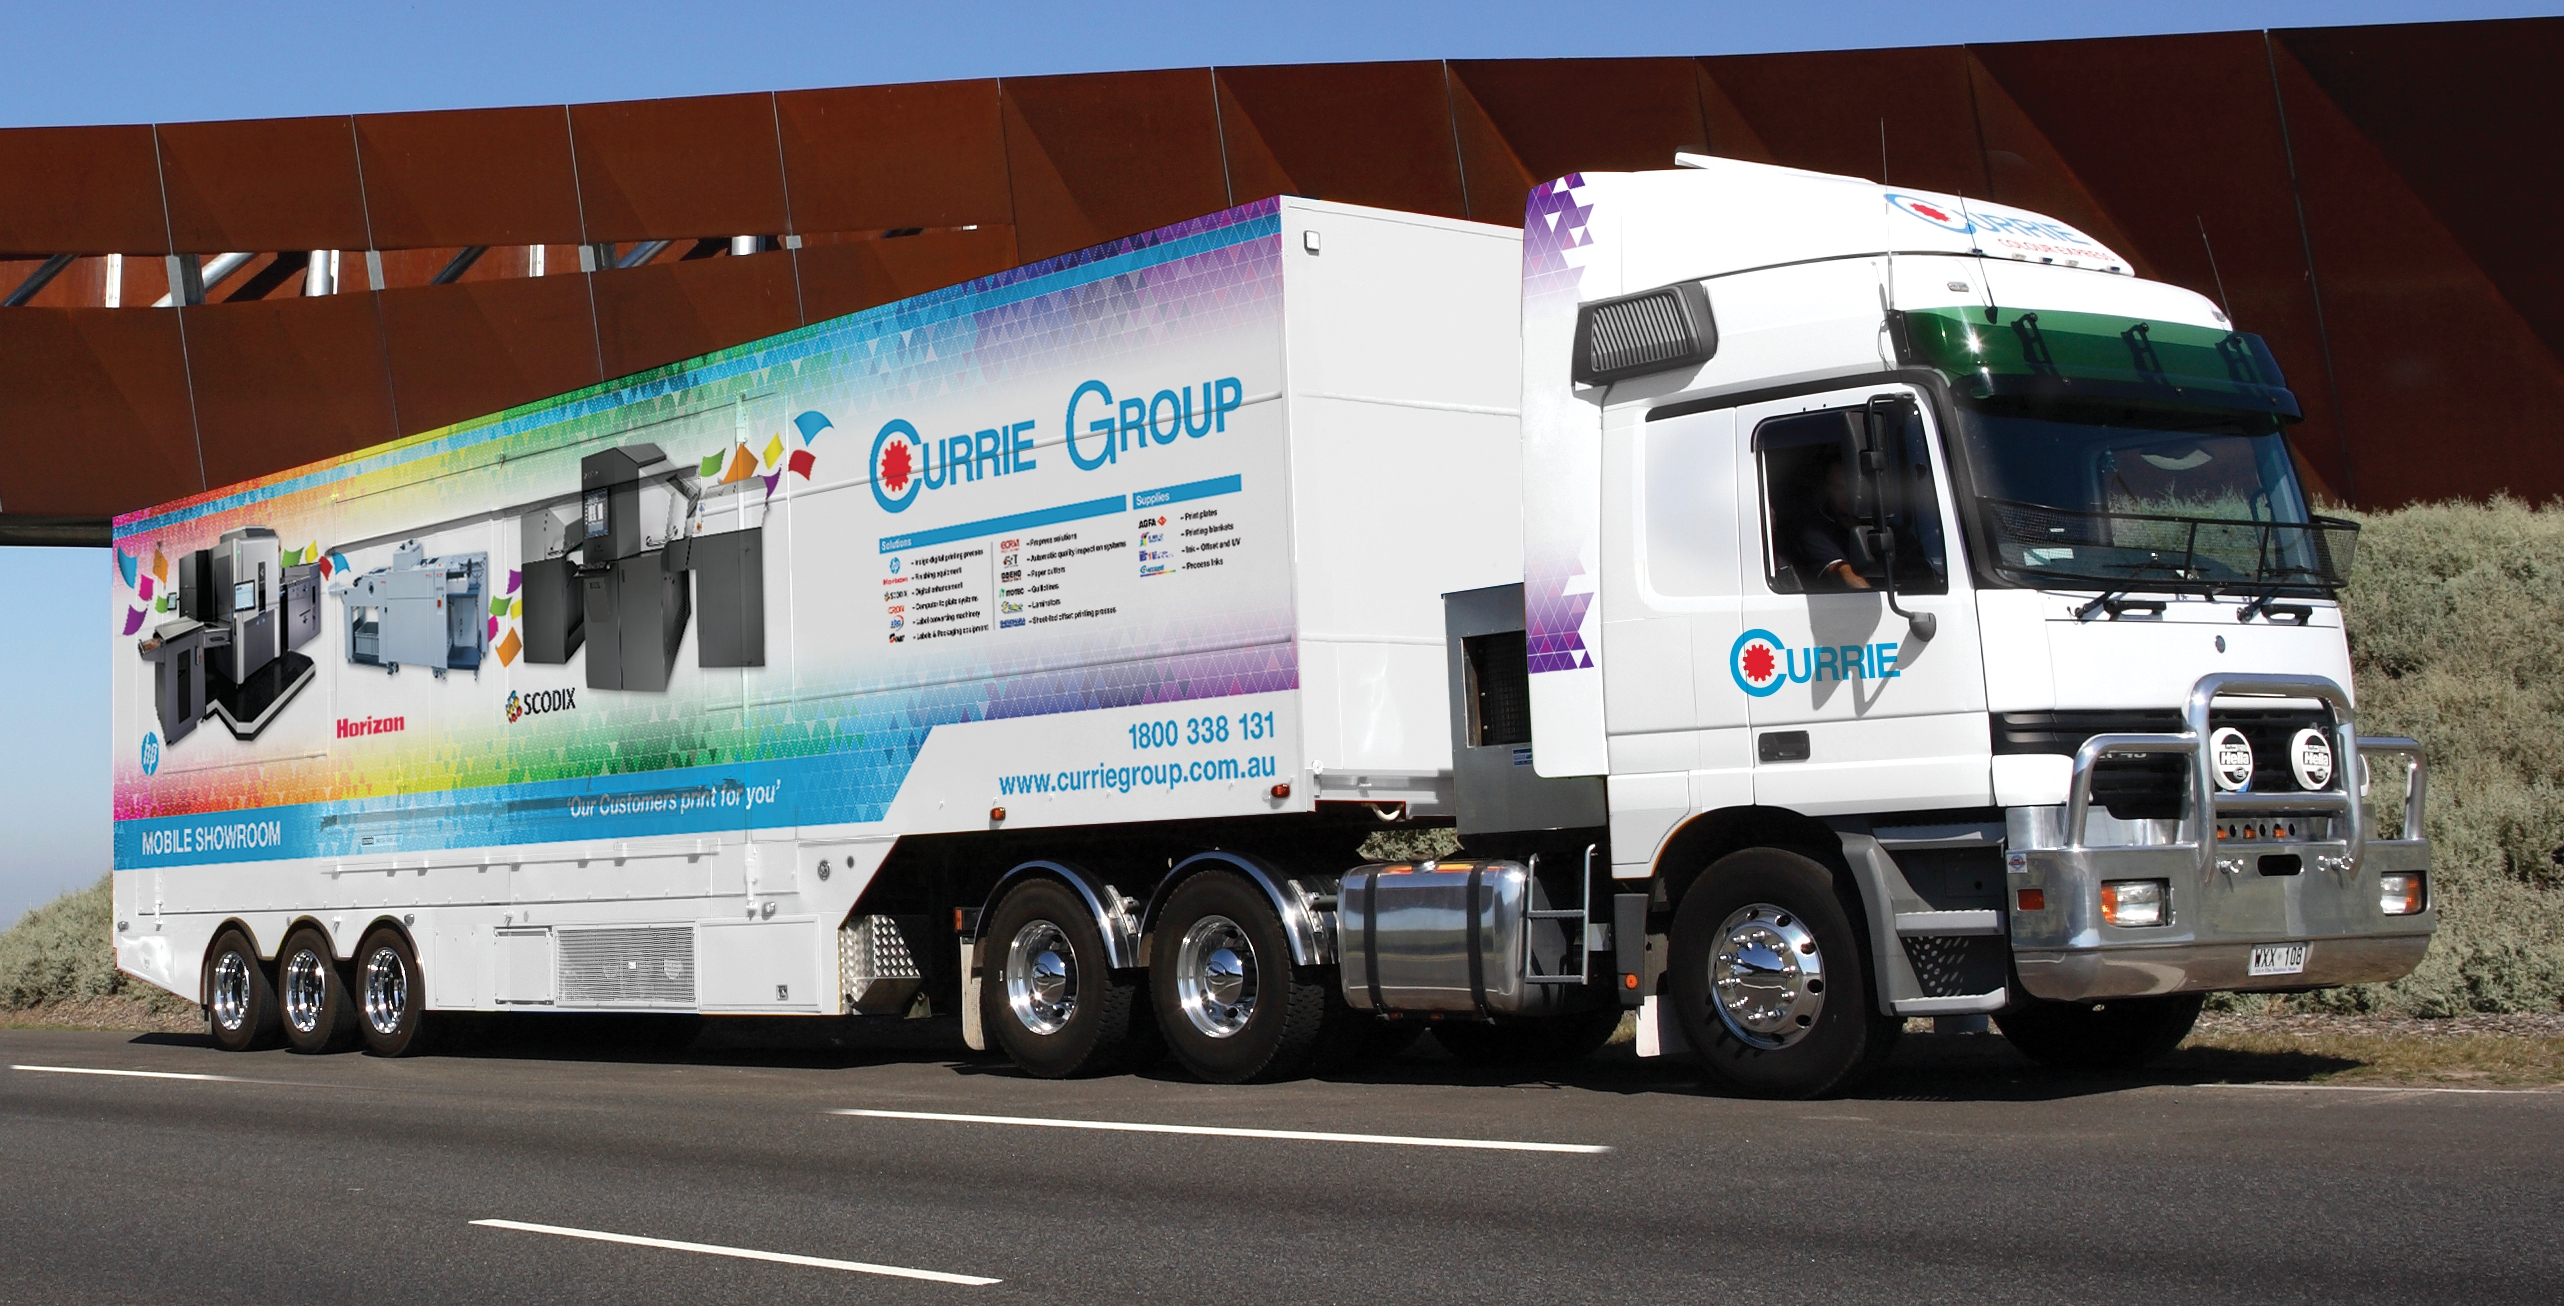 1 Currie Group Mobile Showroom 3